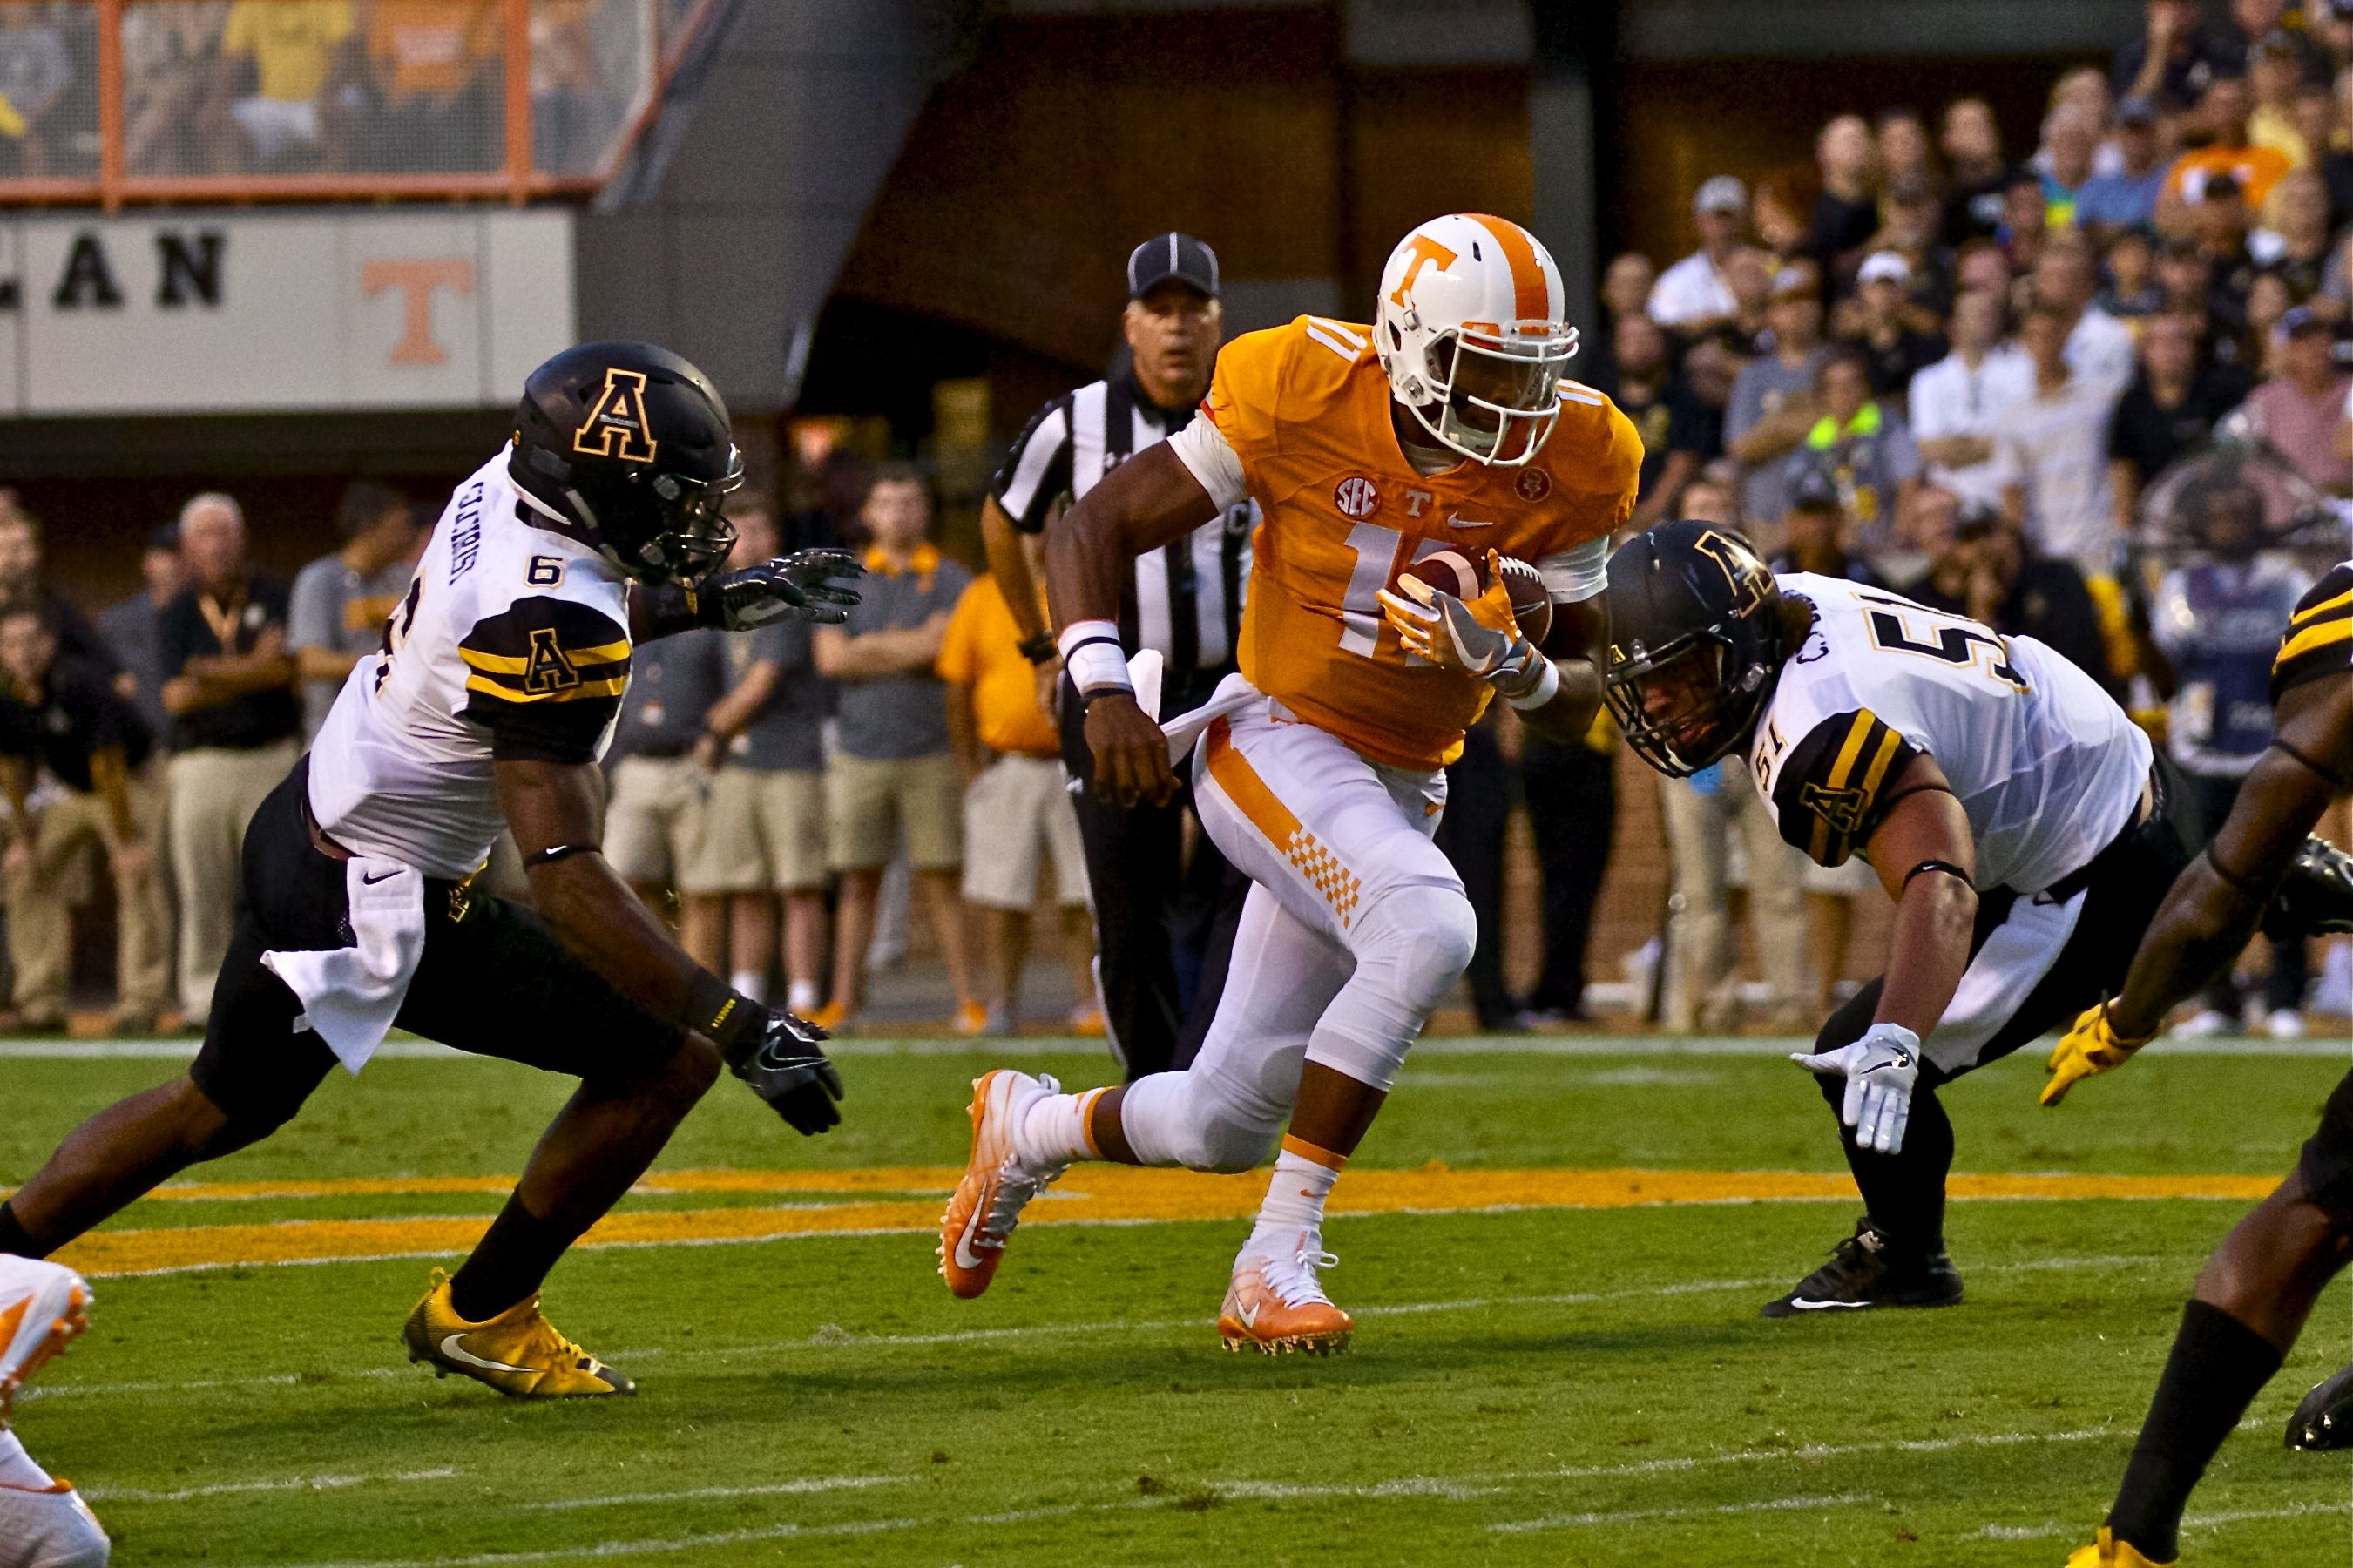 Photo Gallery: Tennessee vs. Appalachian State